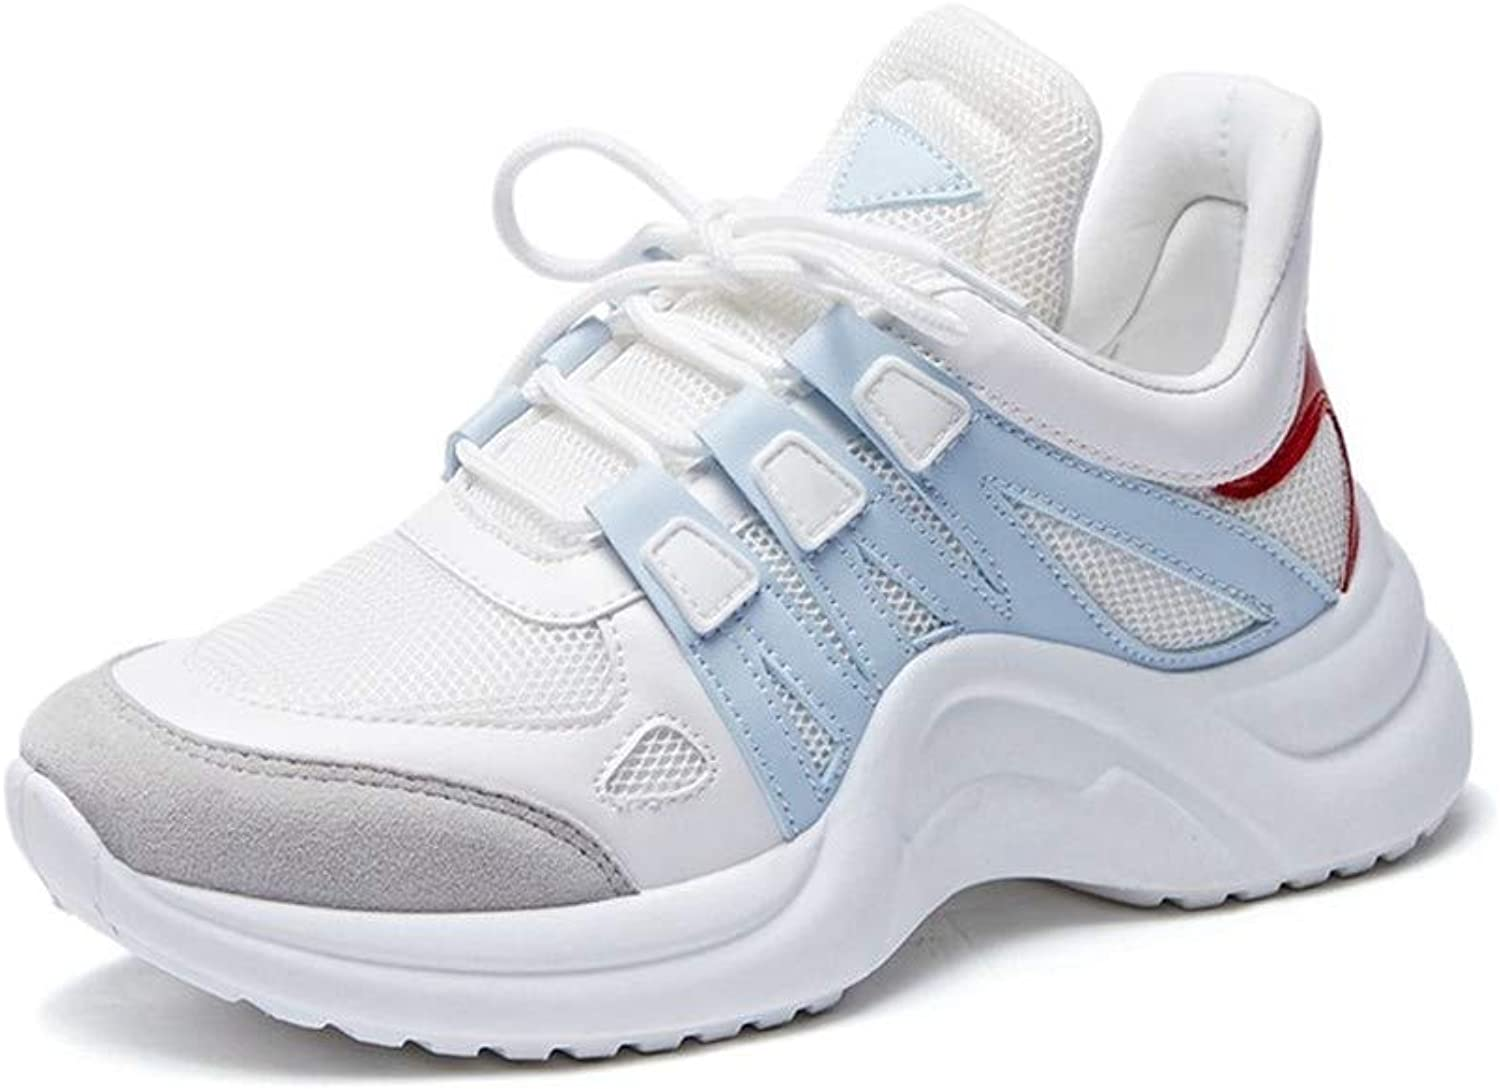 Sodef Woman's Fashion Running Sneakers,Girl Casual Flat Round Toe Breathable Lace-up Sport shoes Small White shoes